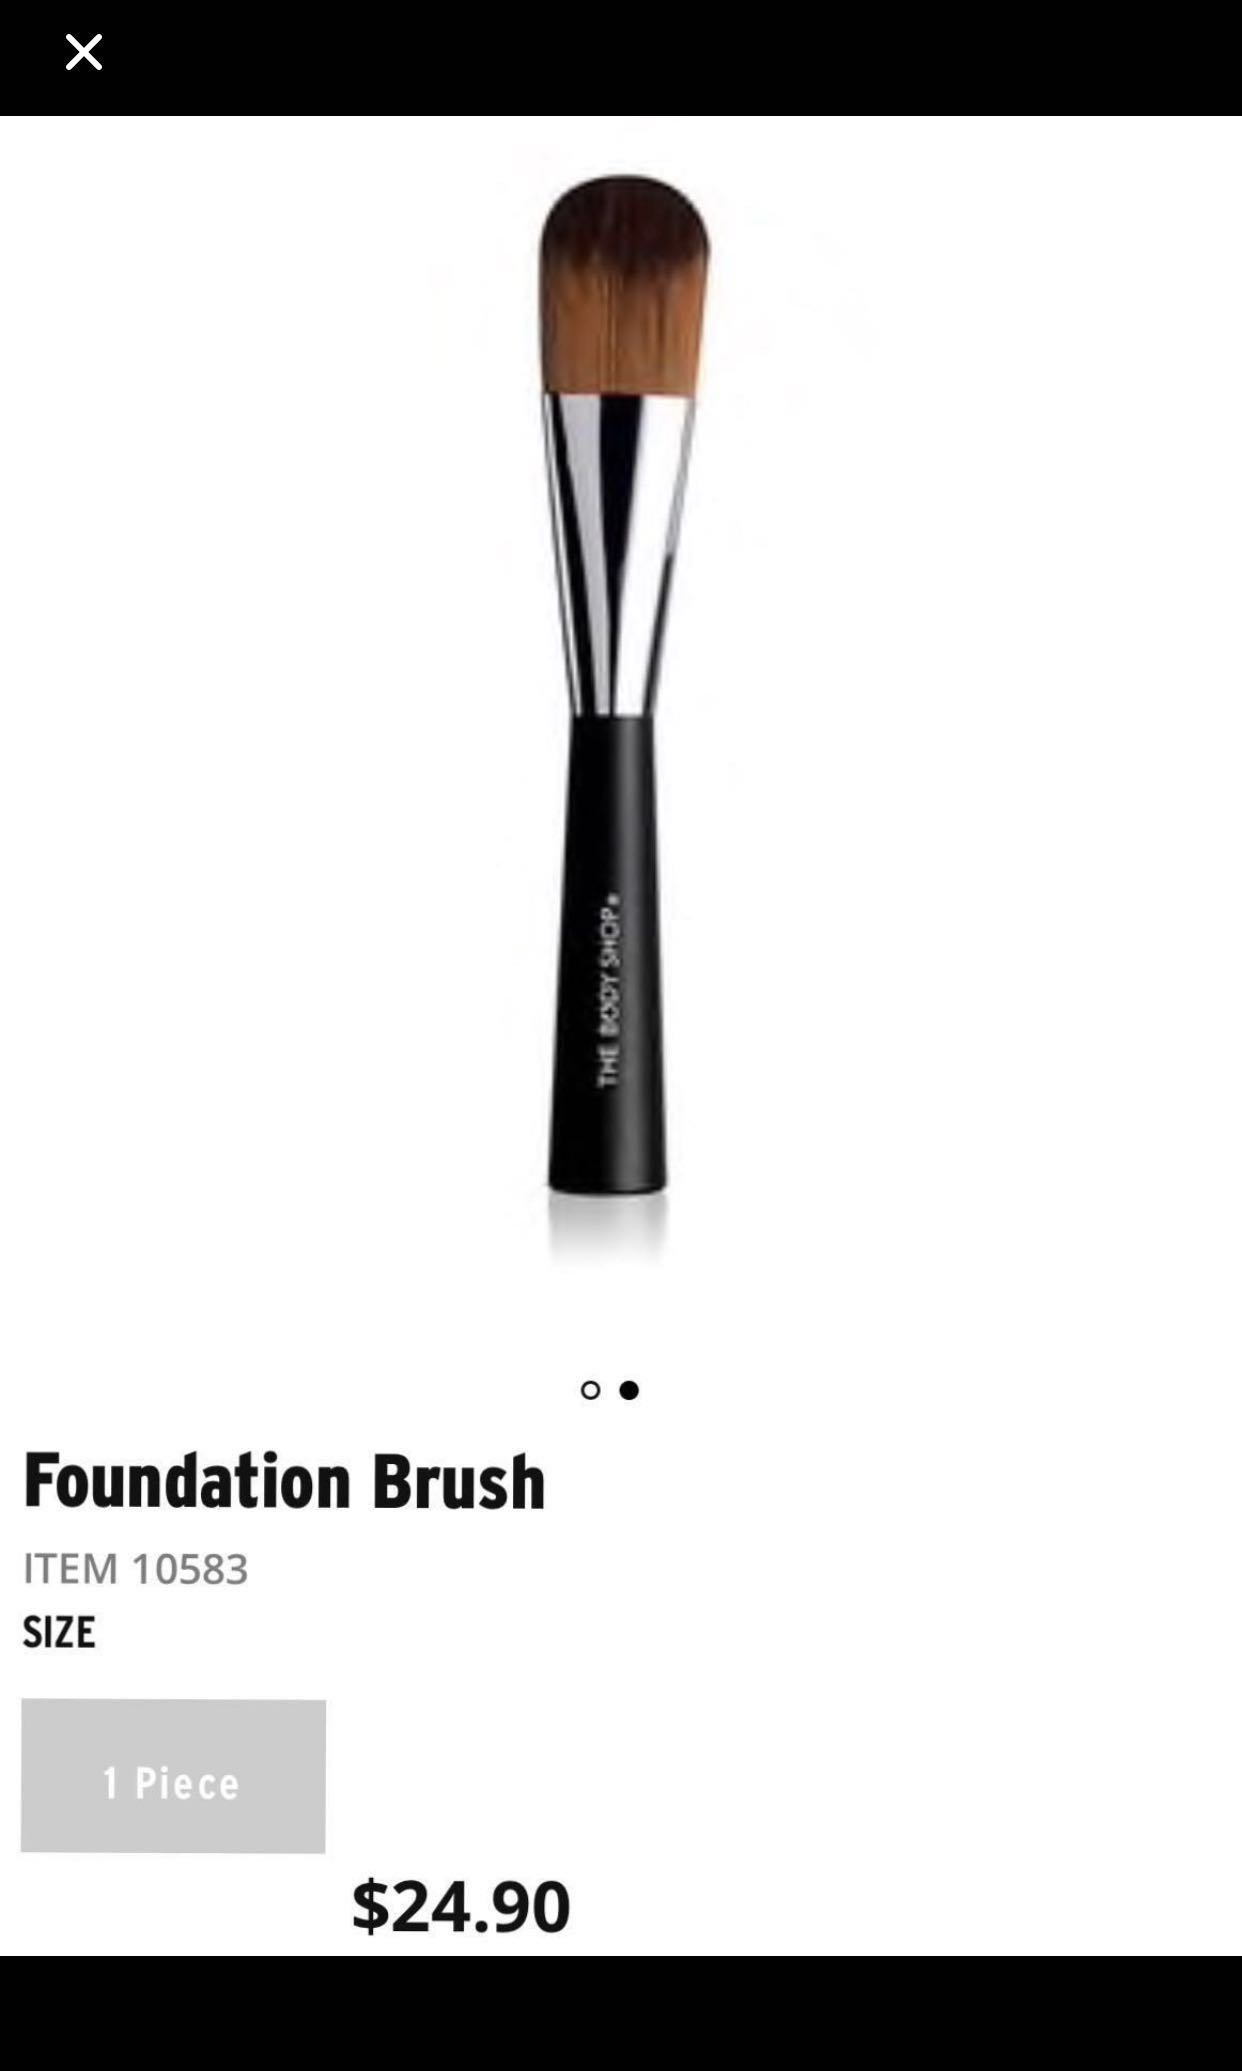 The Body Shop Makeup Brushes Health Beauty Makeup On Carousell